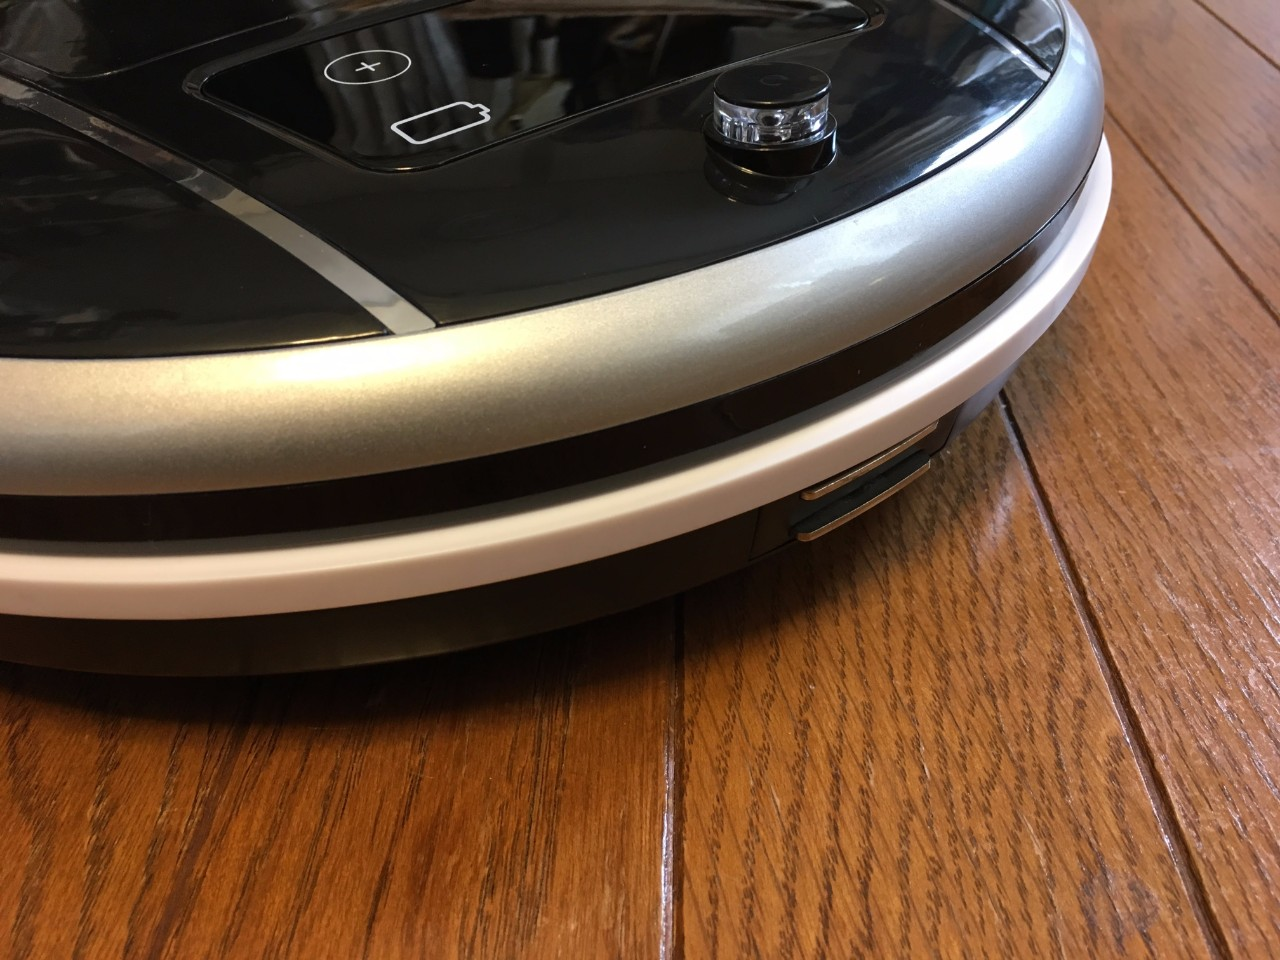 pr-evertop-robotic-vacuum-clean-08